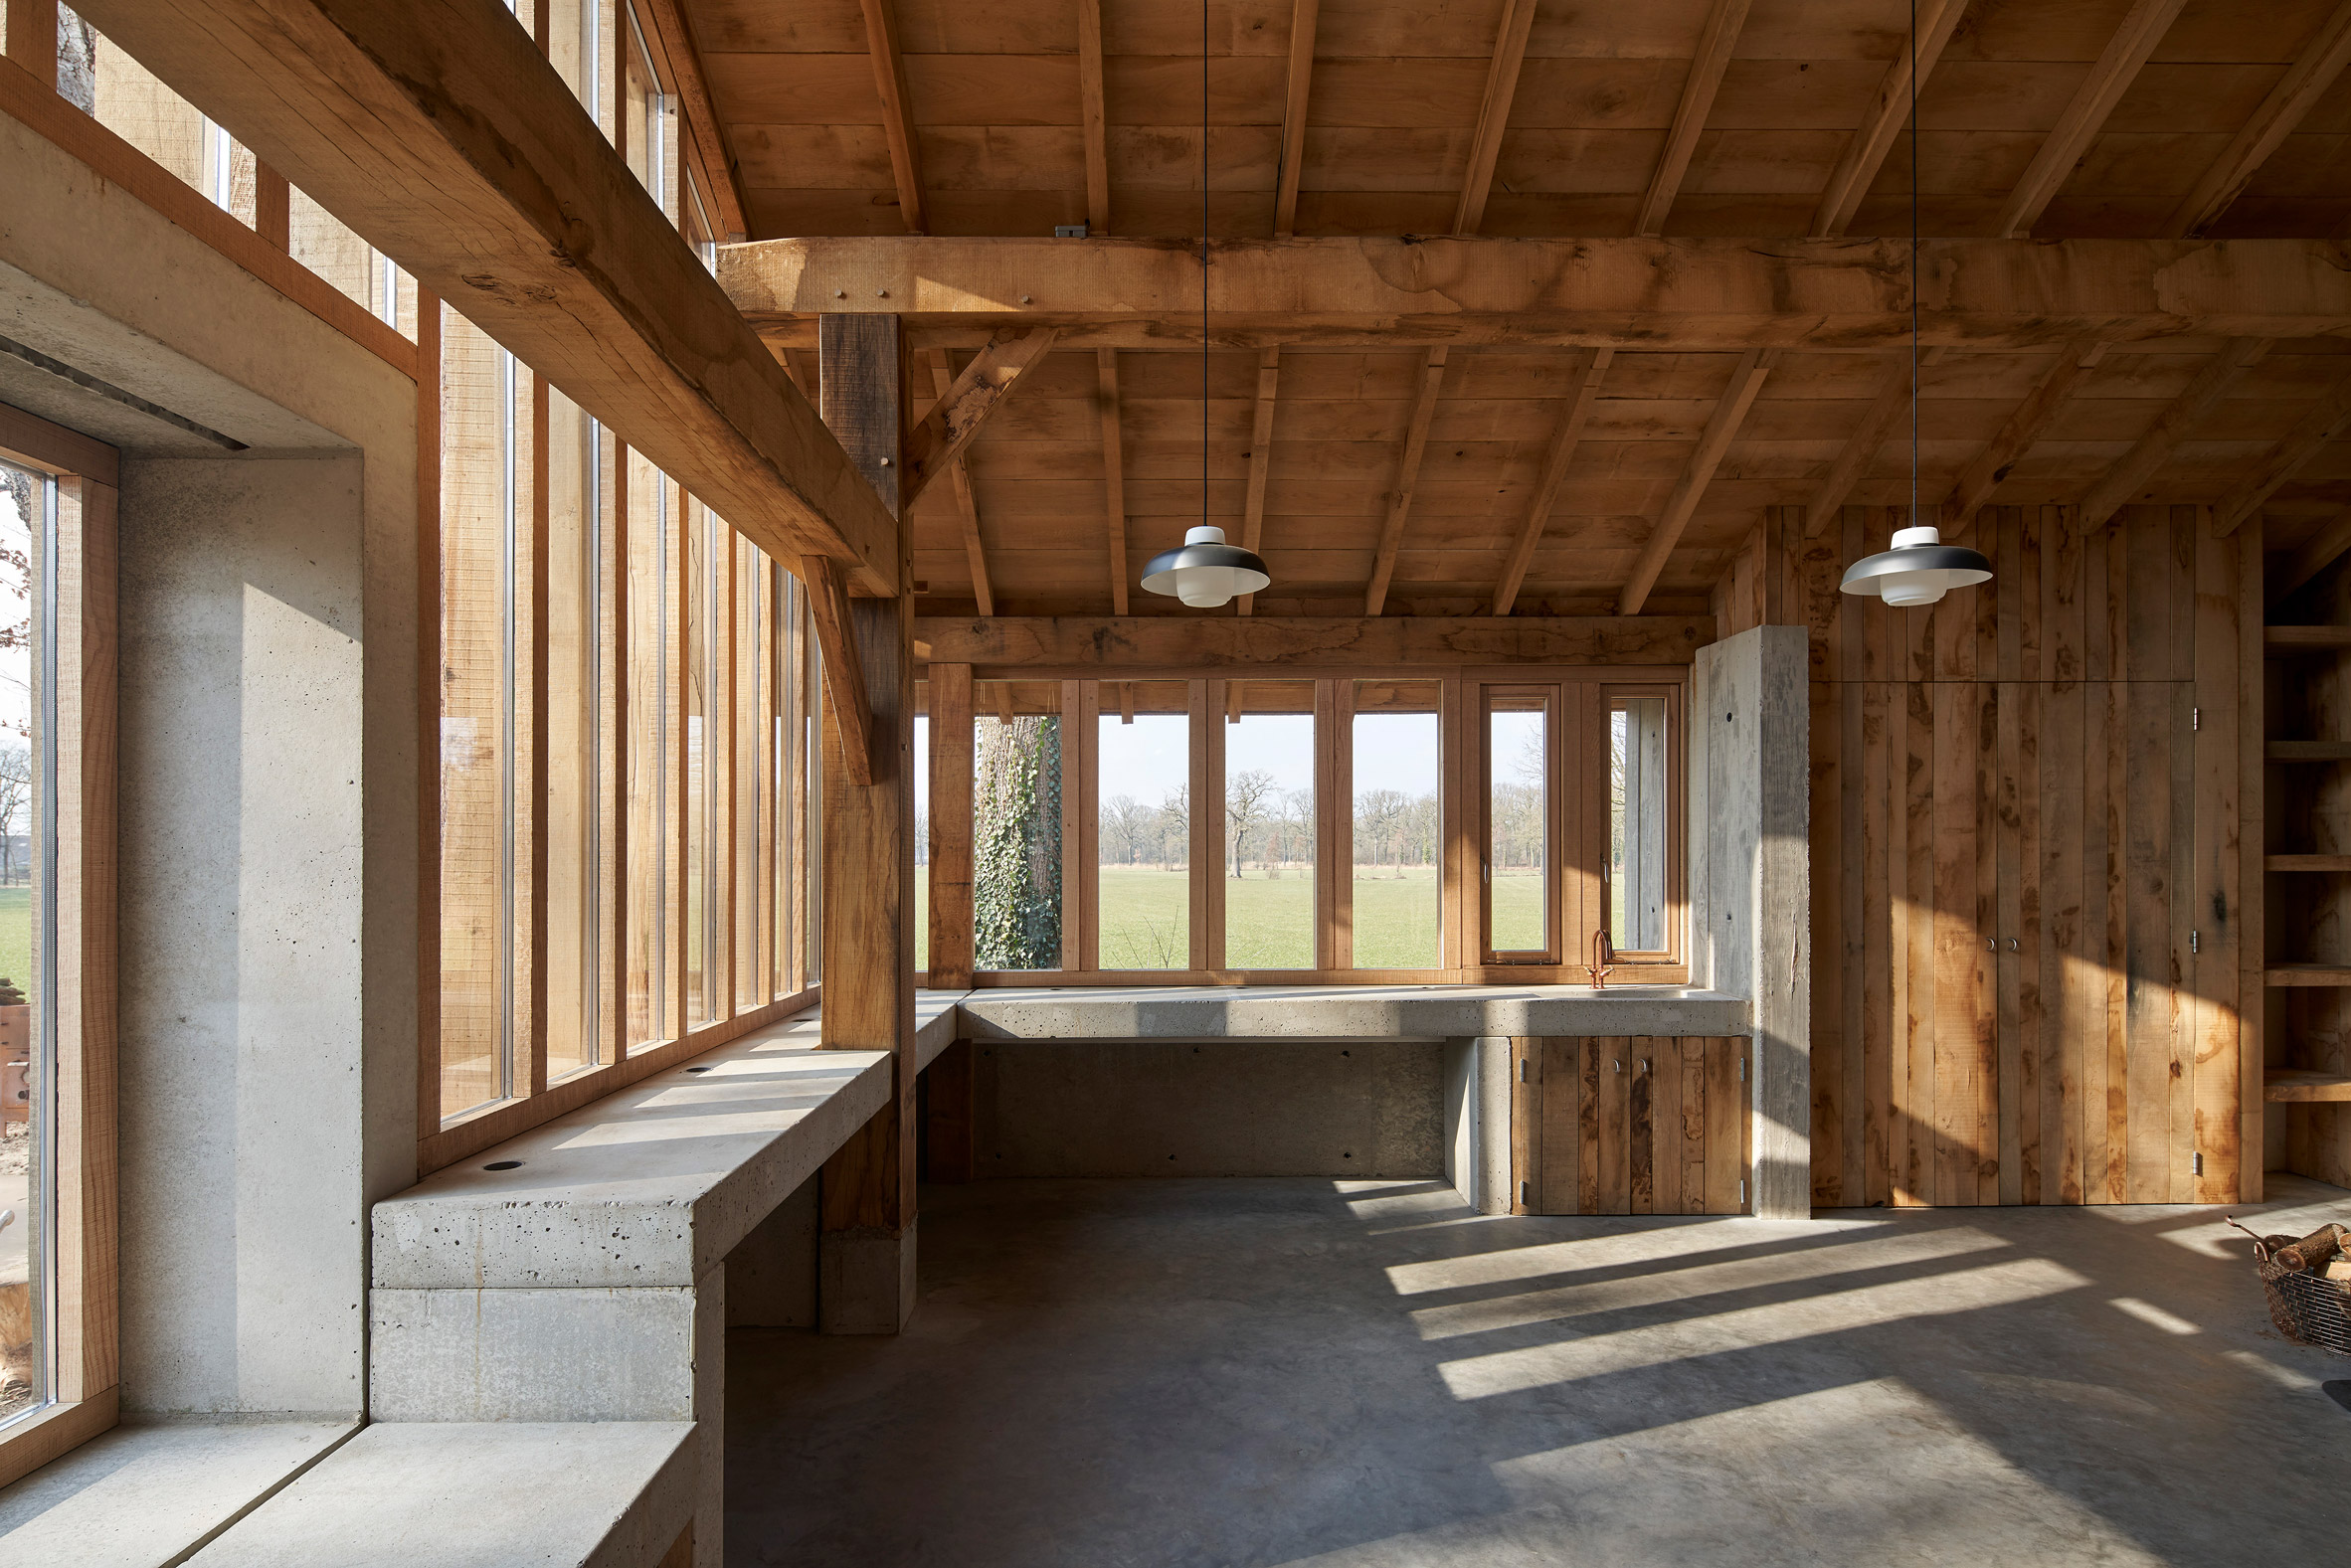 Hilberinkbosch Architects Builds Timber And Glass Barn Using Wood Felled